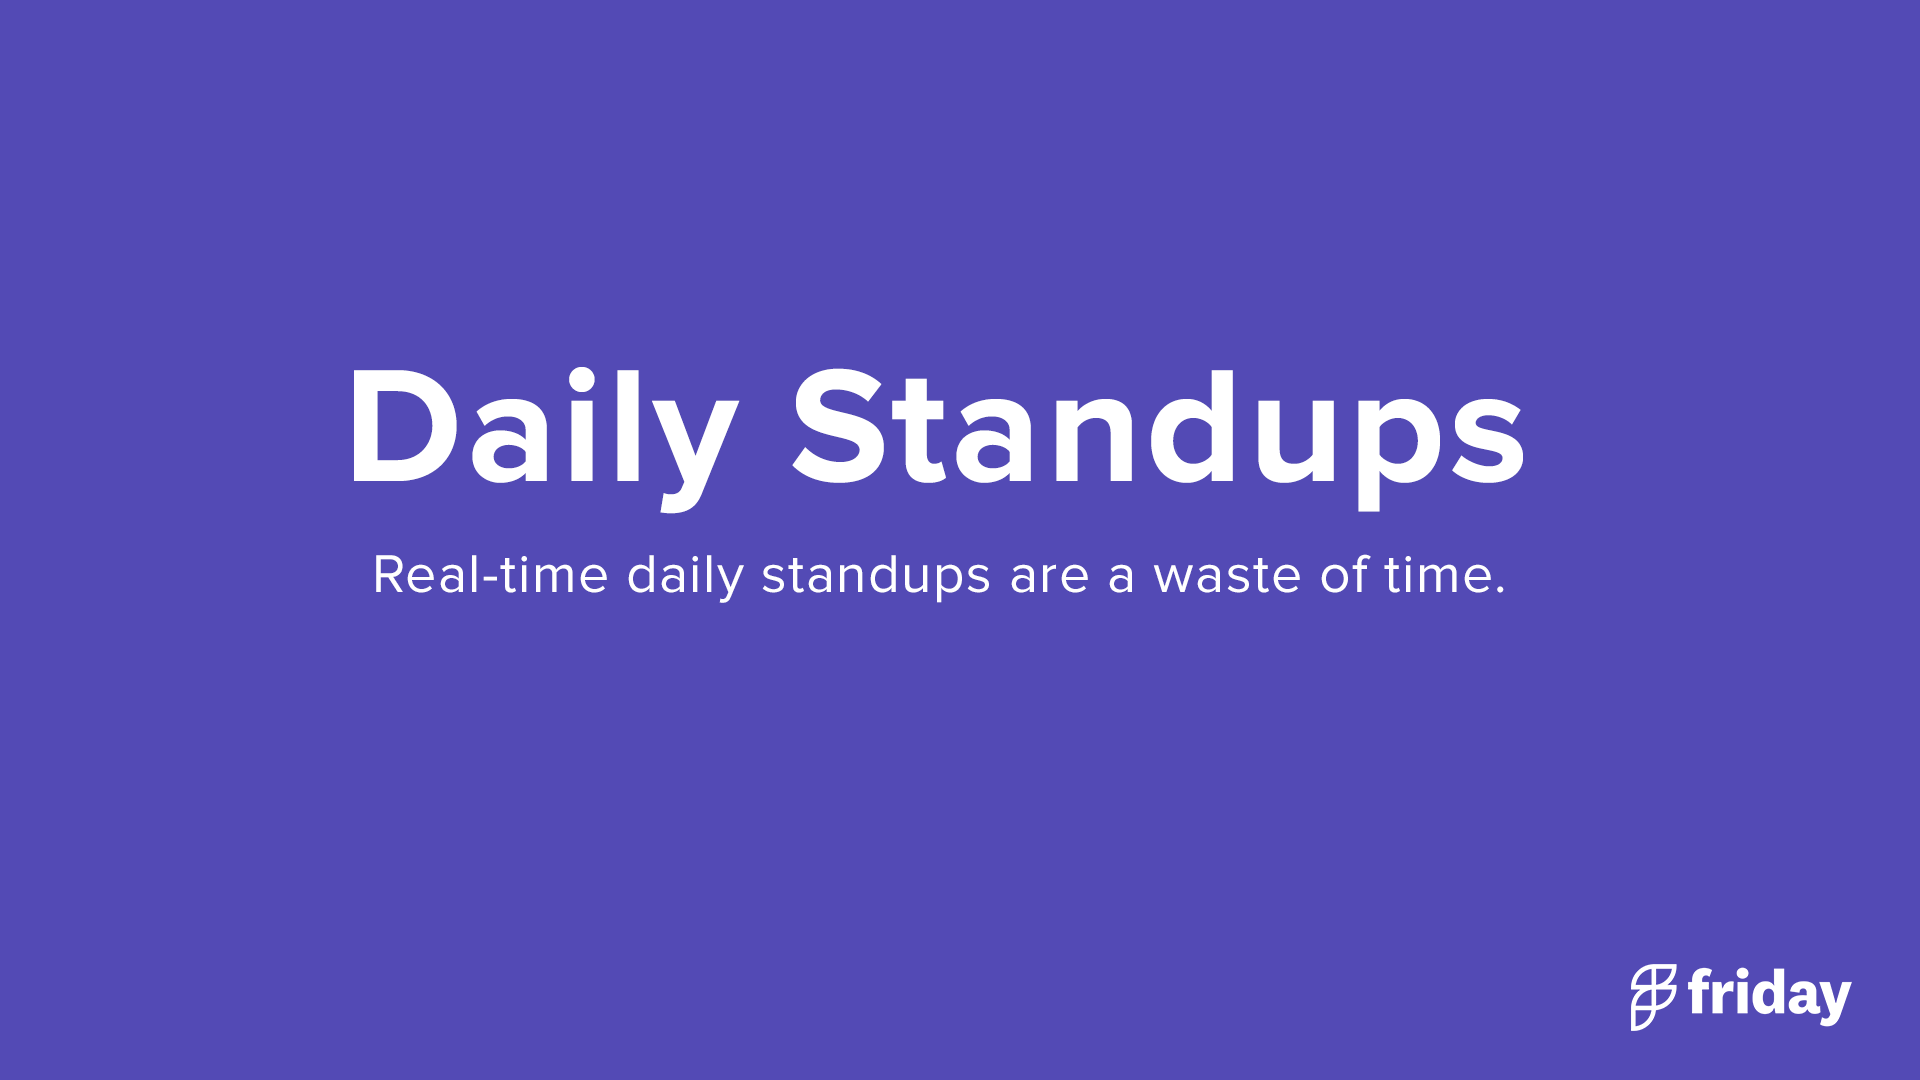 Daily Standups Waste of Time